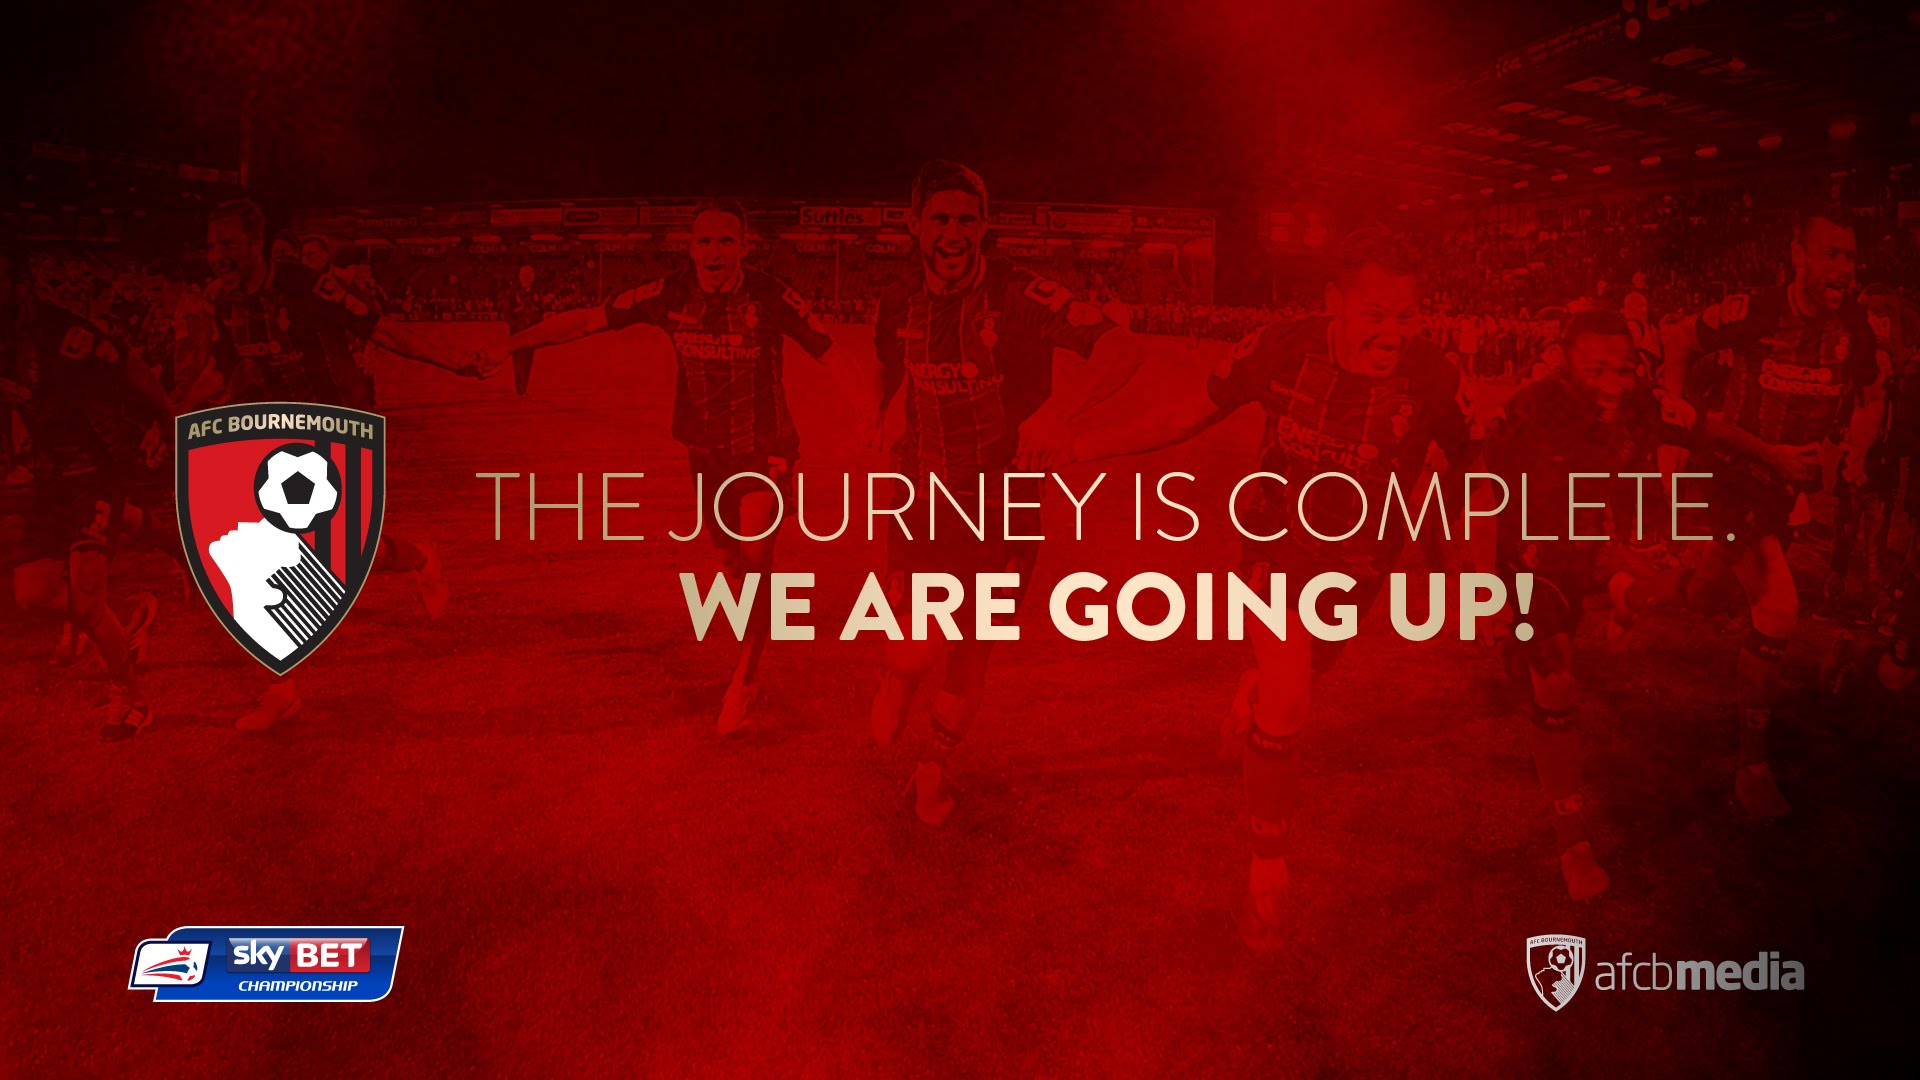 Hd Afc Bournemouth Wallpaper Full Hd Pictures